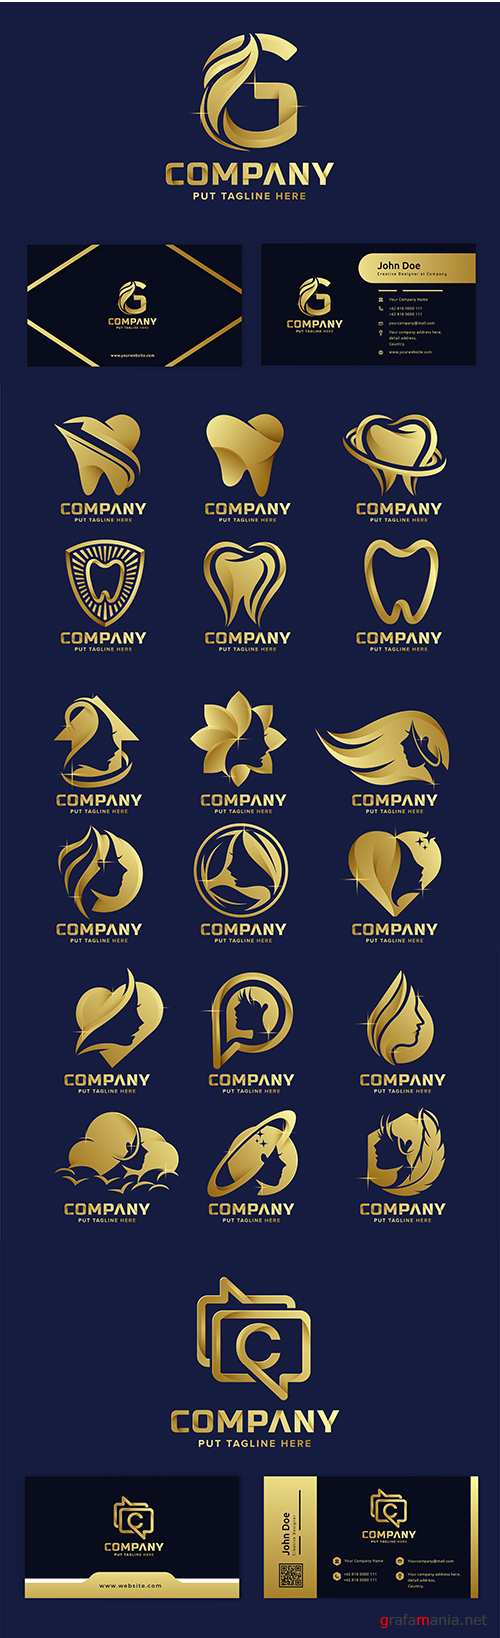 Premium luxury logos corporate company design 44